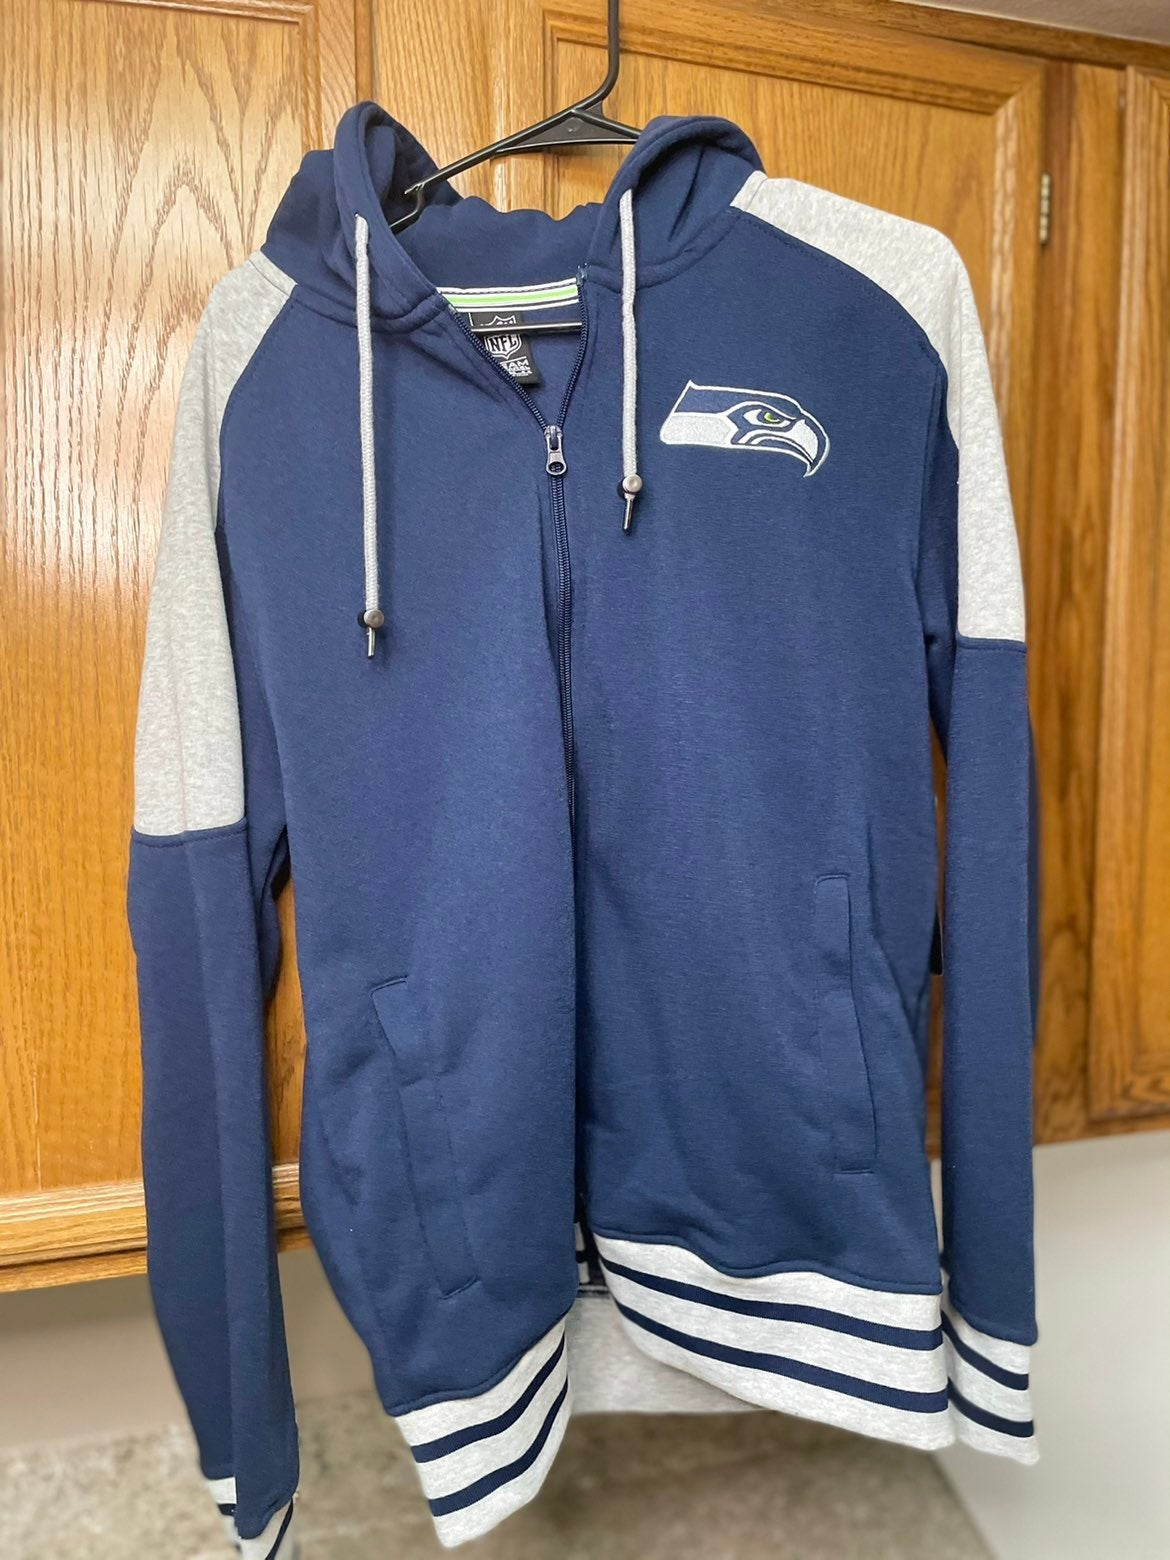 Seattle Seahawks Sweatshirt size M